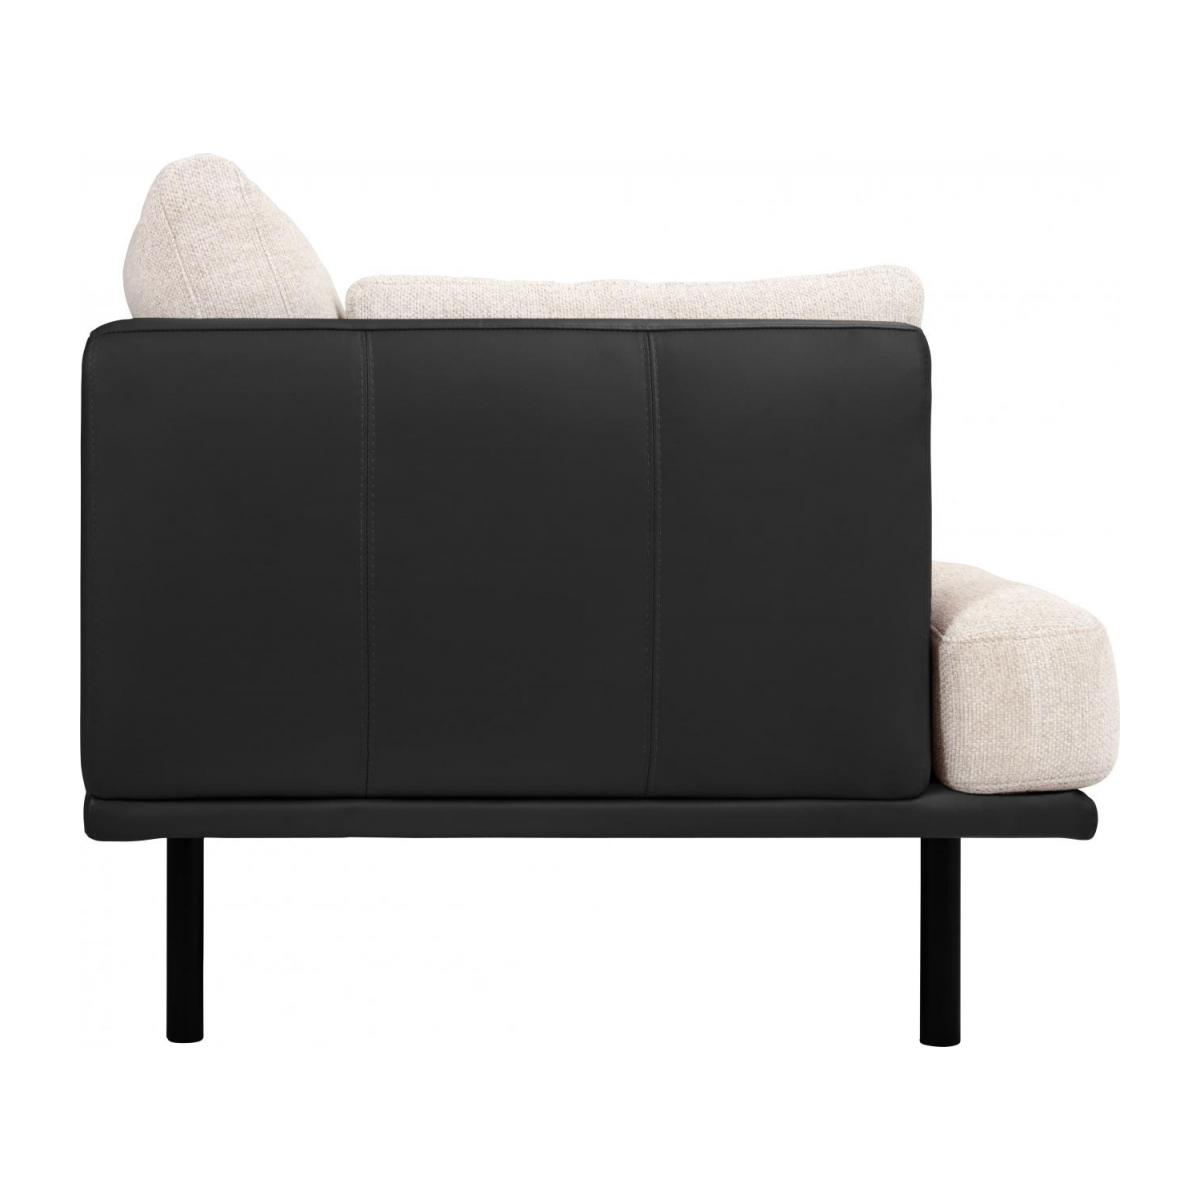 3 seater sofa in Fasoli fabric, snow white with base and armrests in black leather n°4